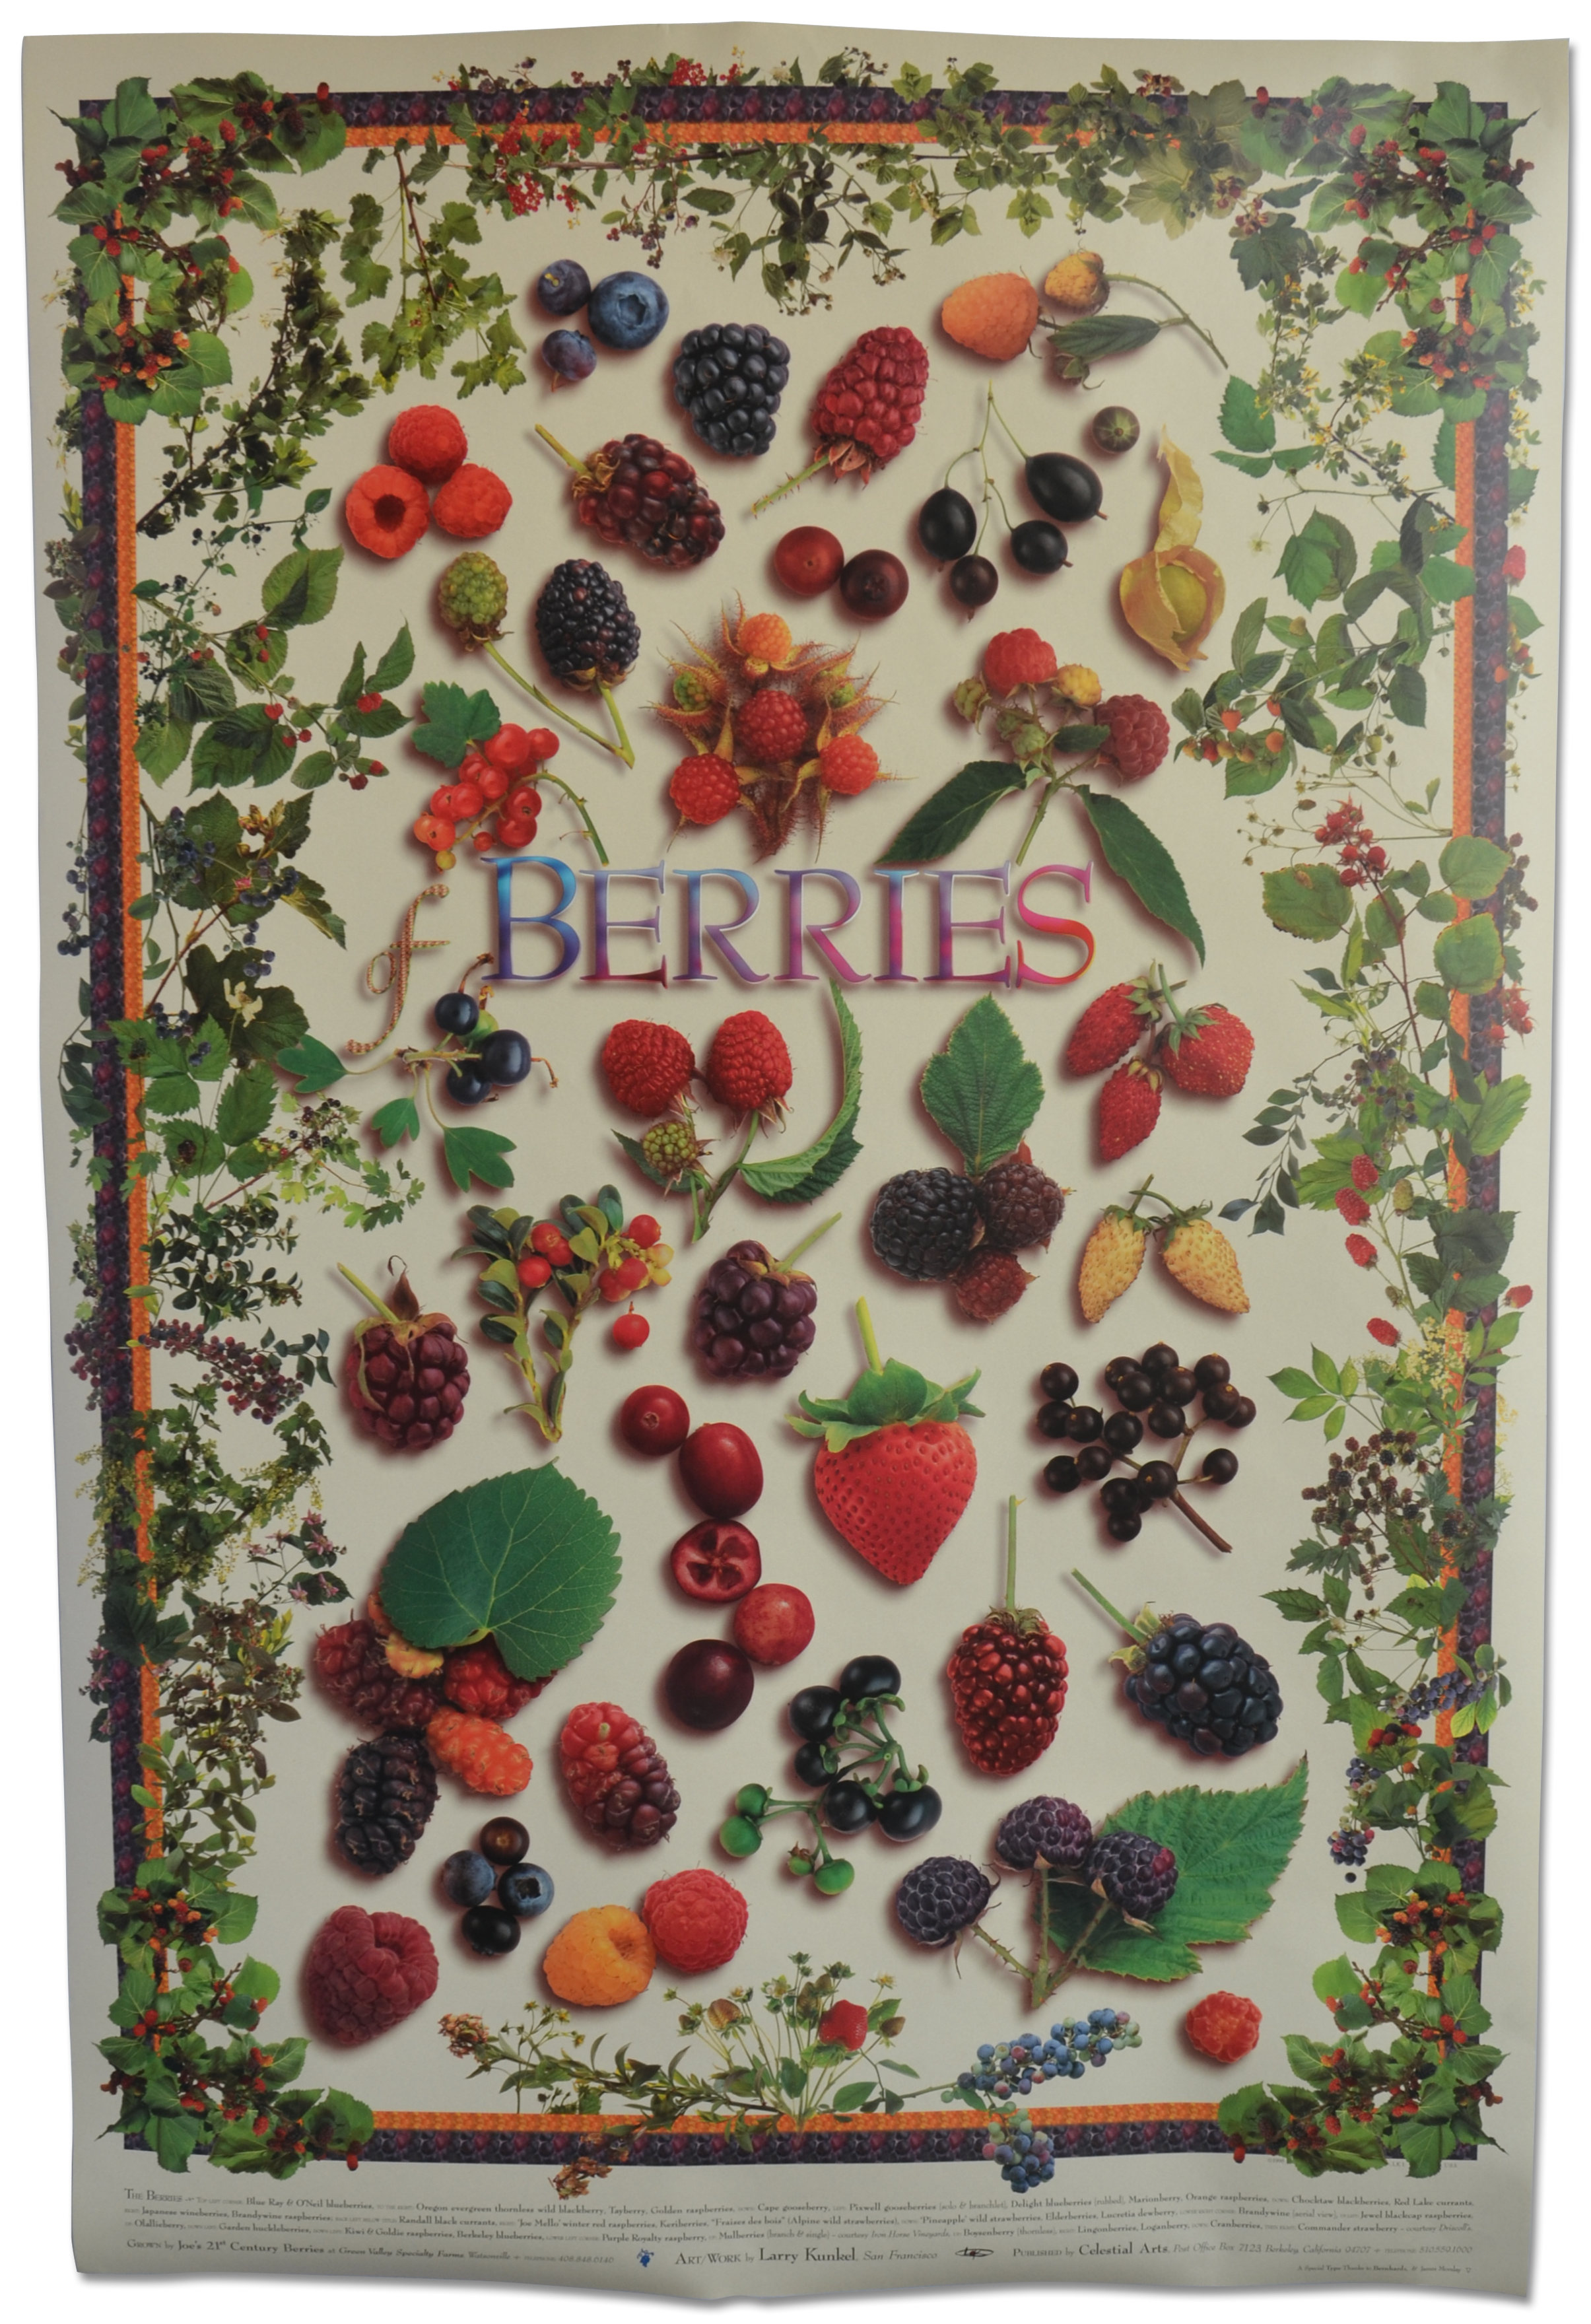 The Berries poster